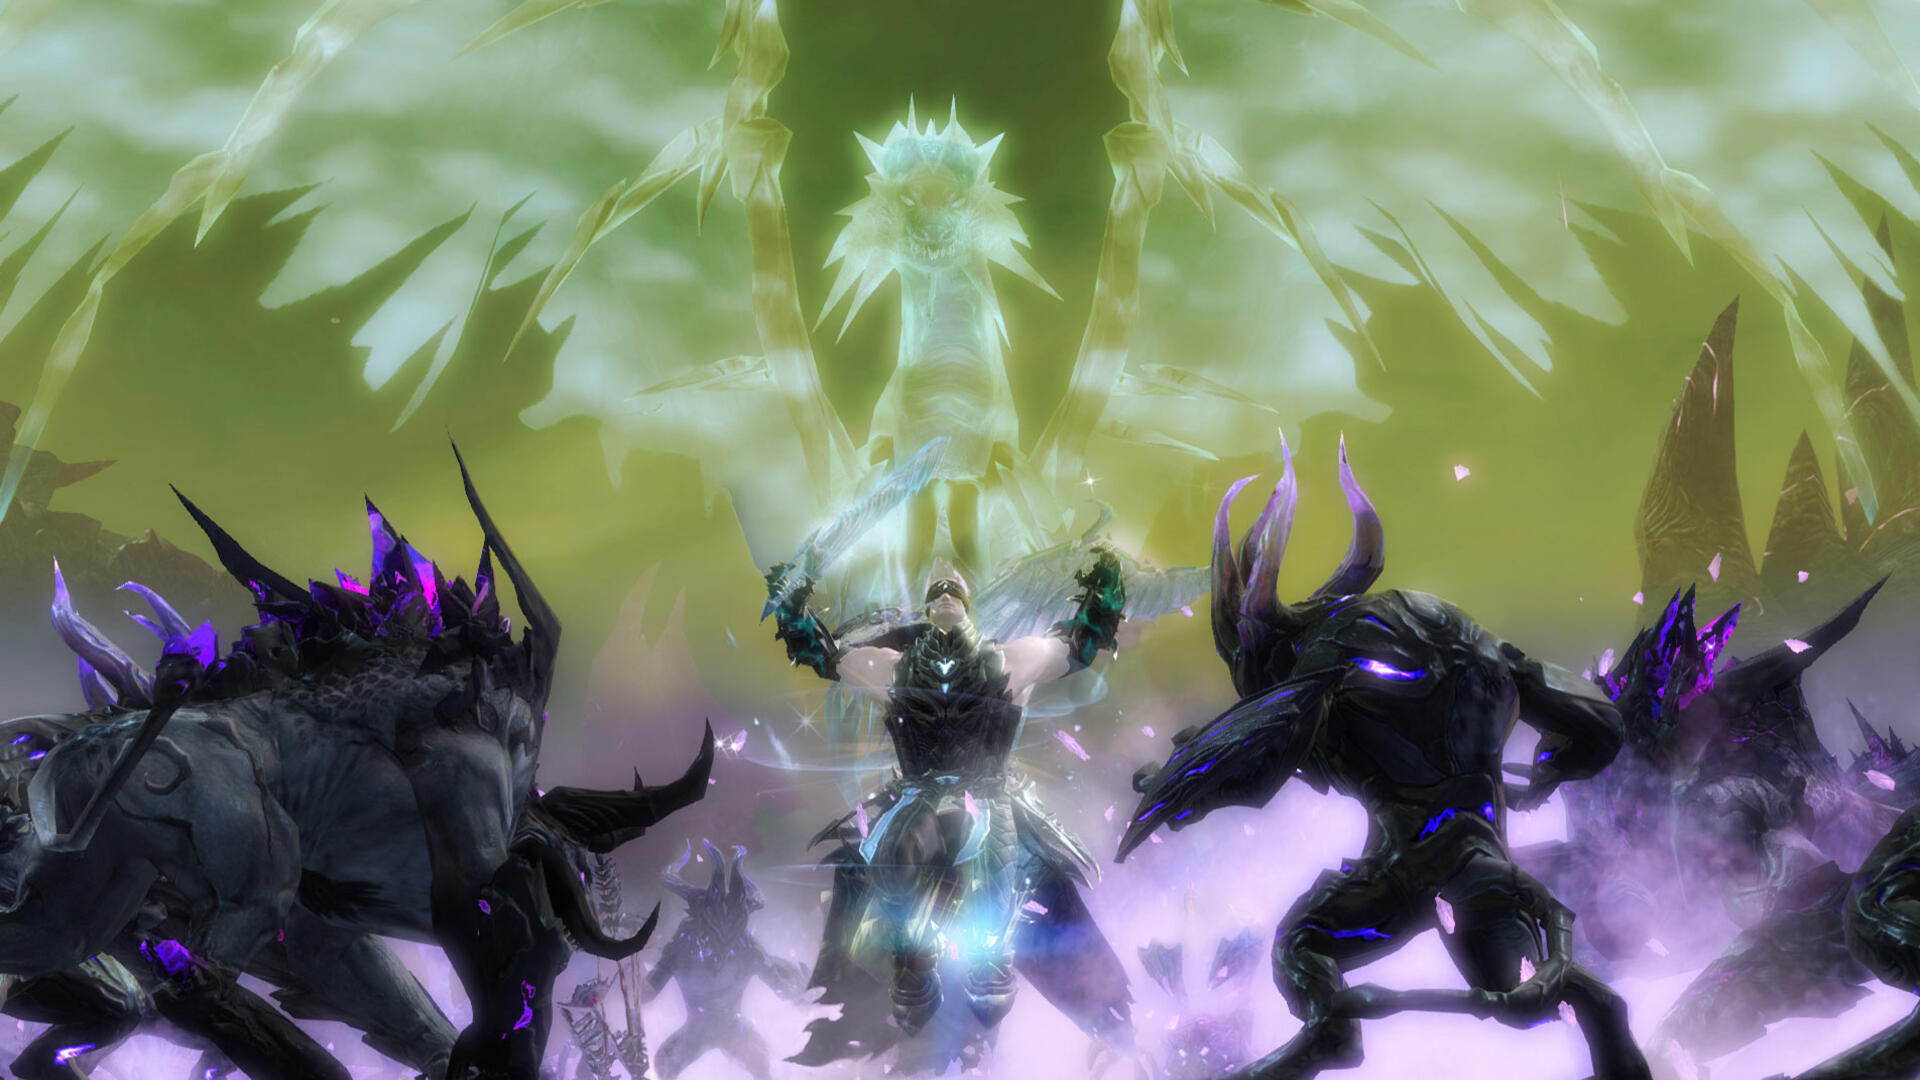 Former ArenaNet Writer Says She Had No Chance to Argue Her Case Before Firing